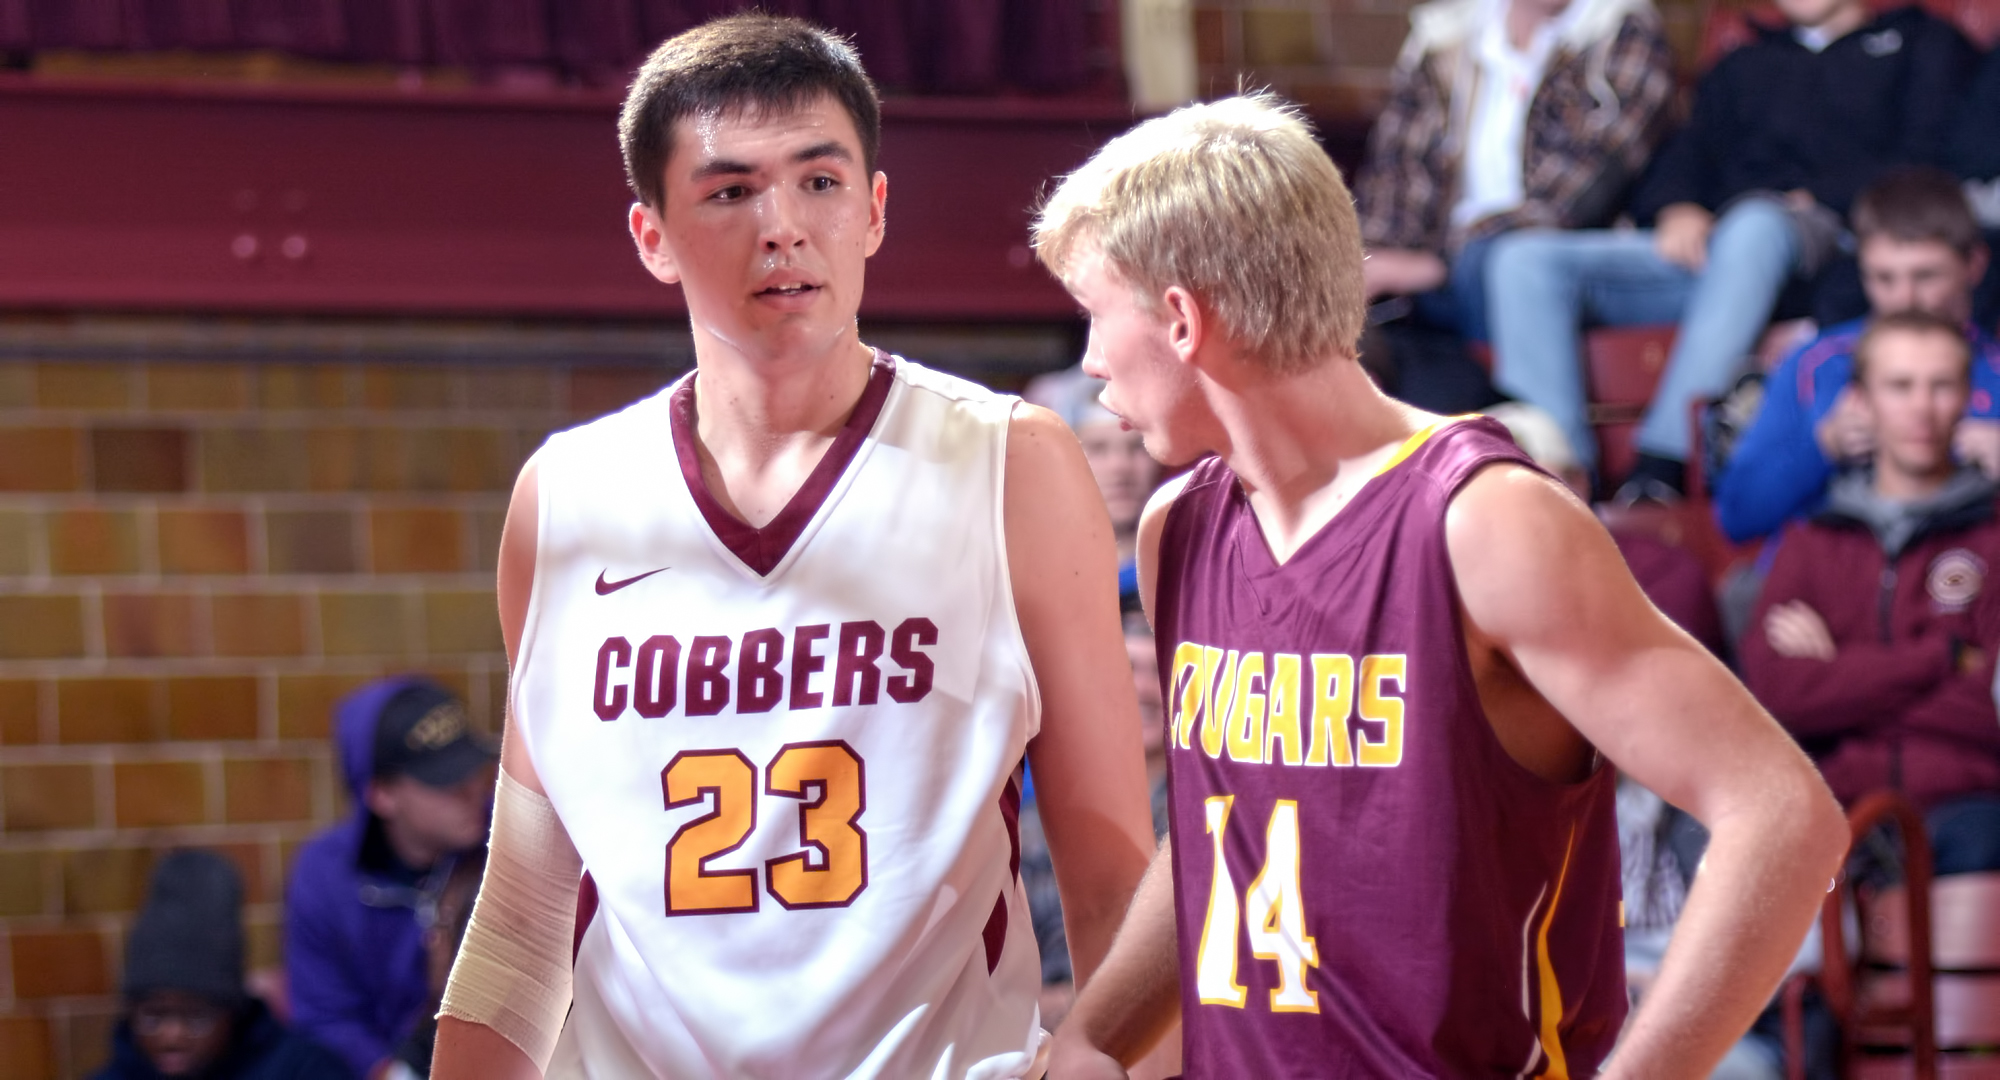 Jordan Davis had a career-high 15 points in the Cobbers' MIAC opener at Augsburg.